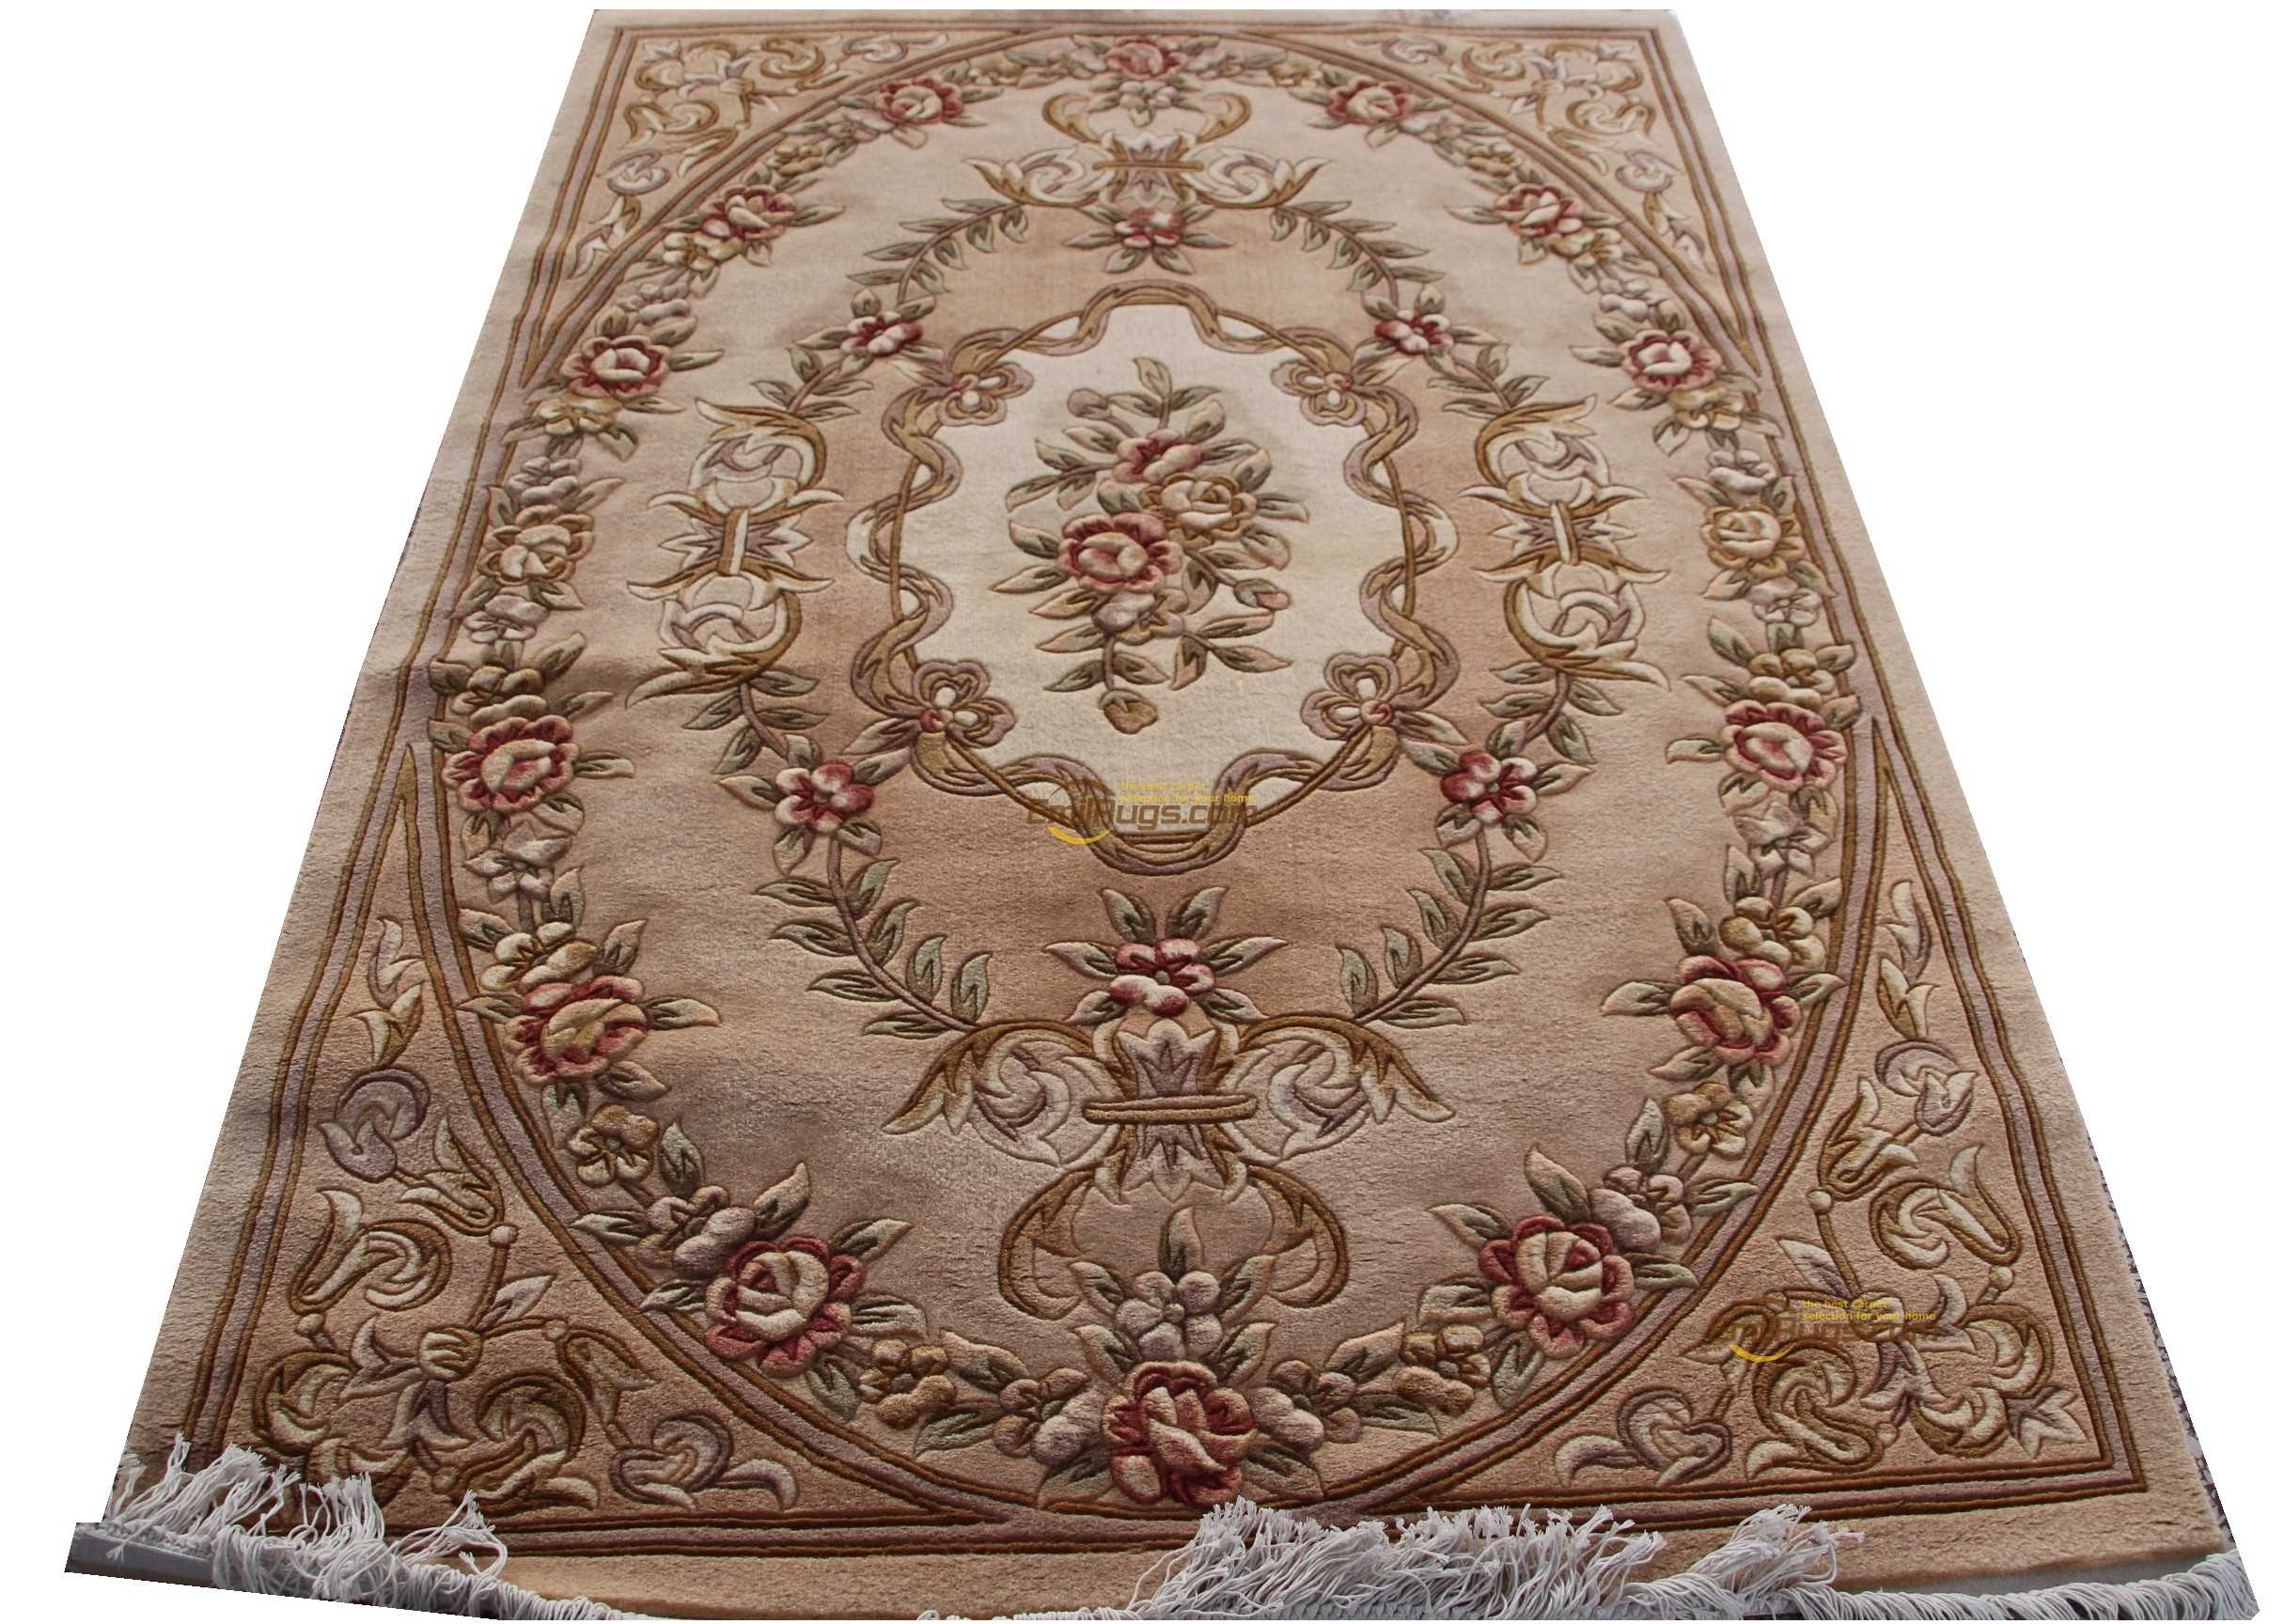 wool french carpet About machine made Thick Plush Savonnerie Rug Carpet Made To Order 6all  A-036 129 gc85savyg28wool french carpet About machine made Thick Plush Savonnerie Rug Carpet Made To Order 6all  A-036 129 gc85savyg28